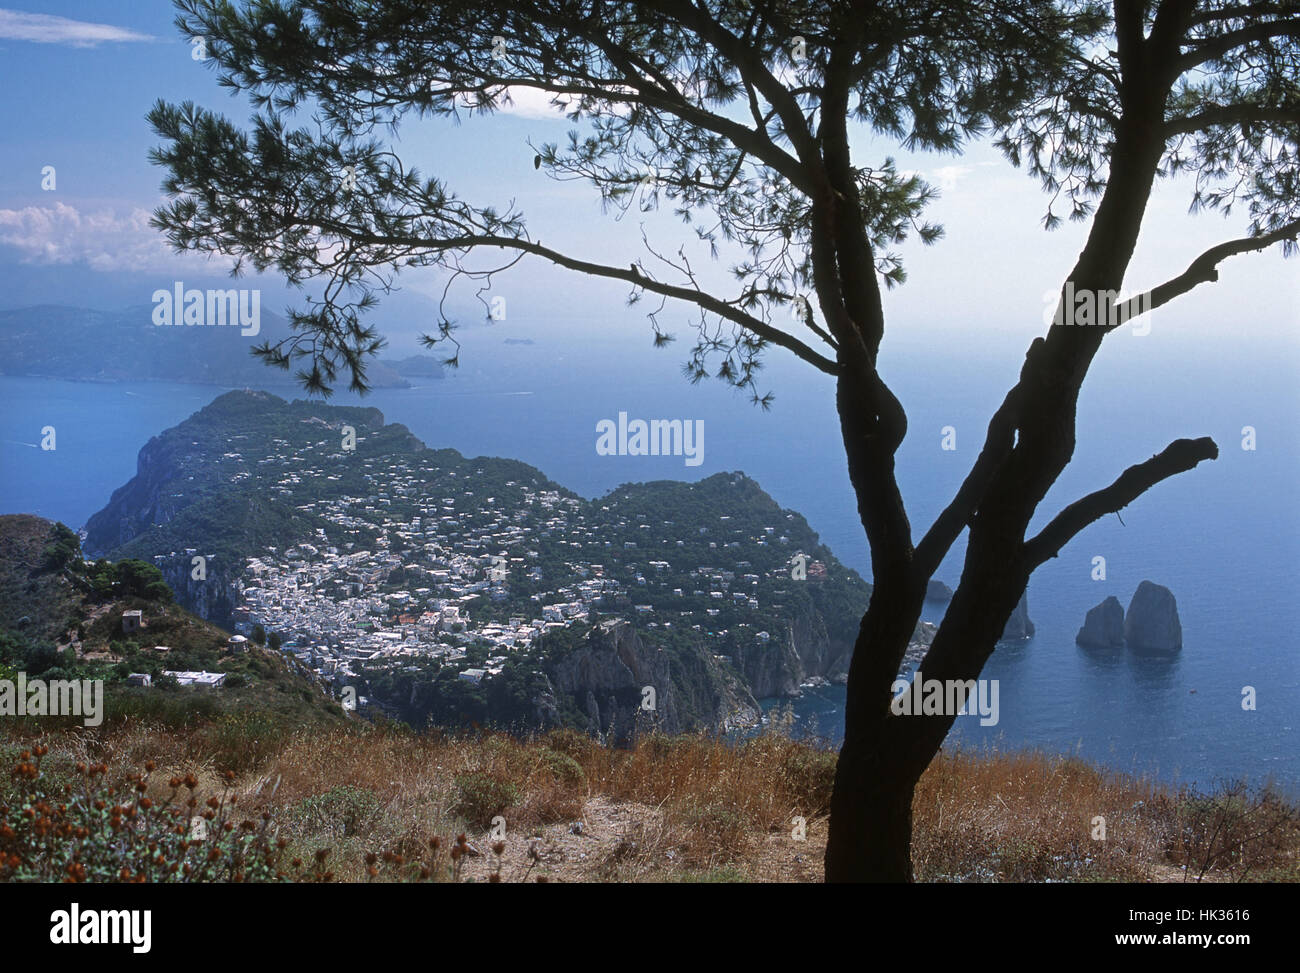 Mountain village and surrounding sea and mainland seen from high viewpoint, Capri island, Italy - Stock Image